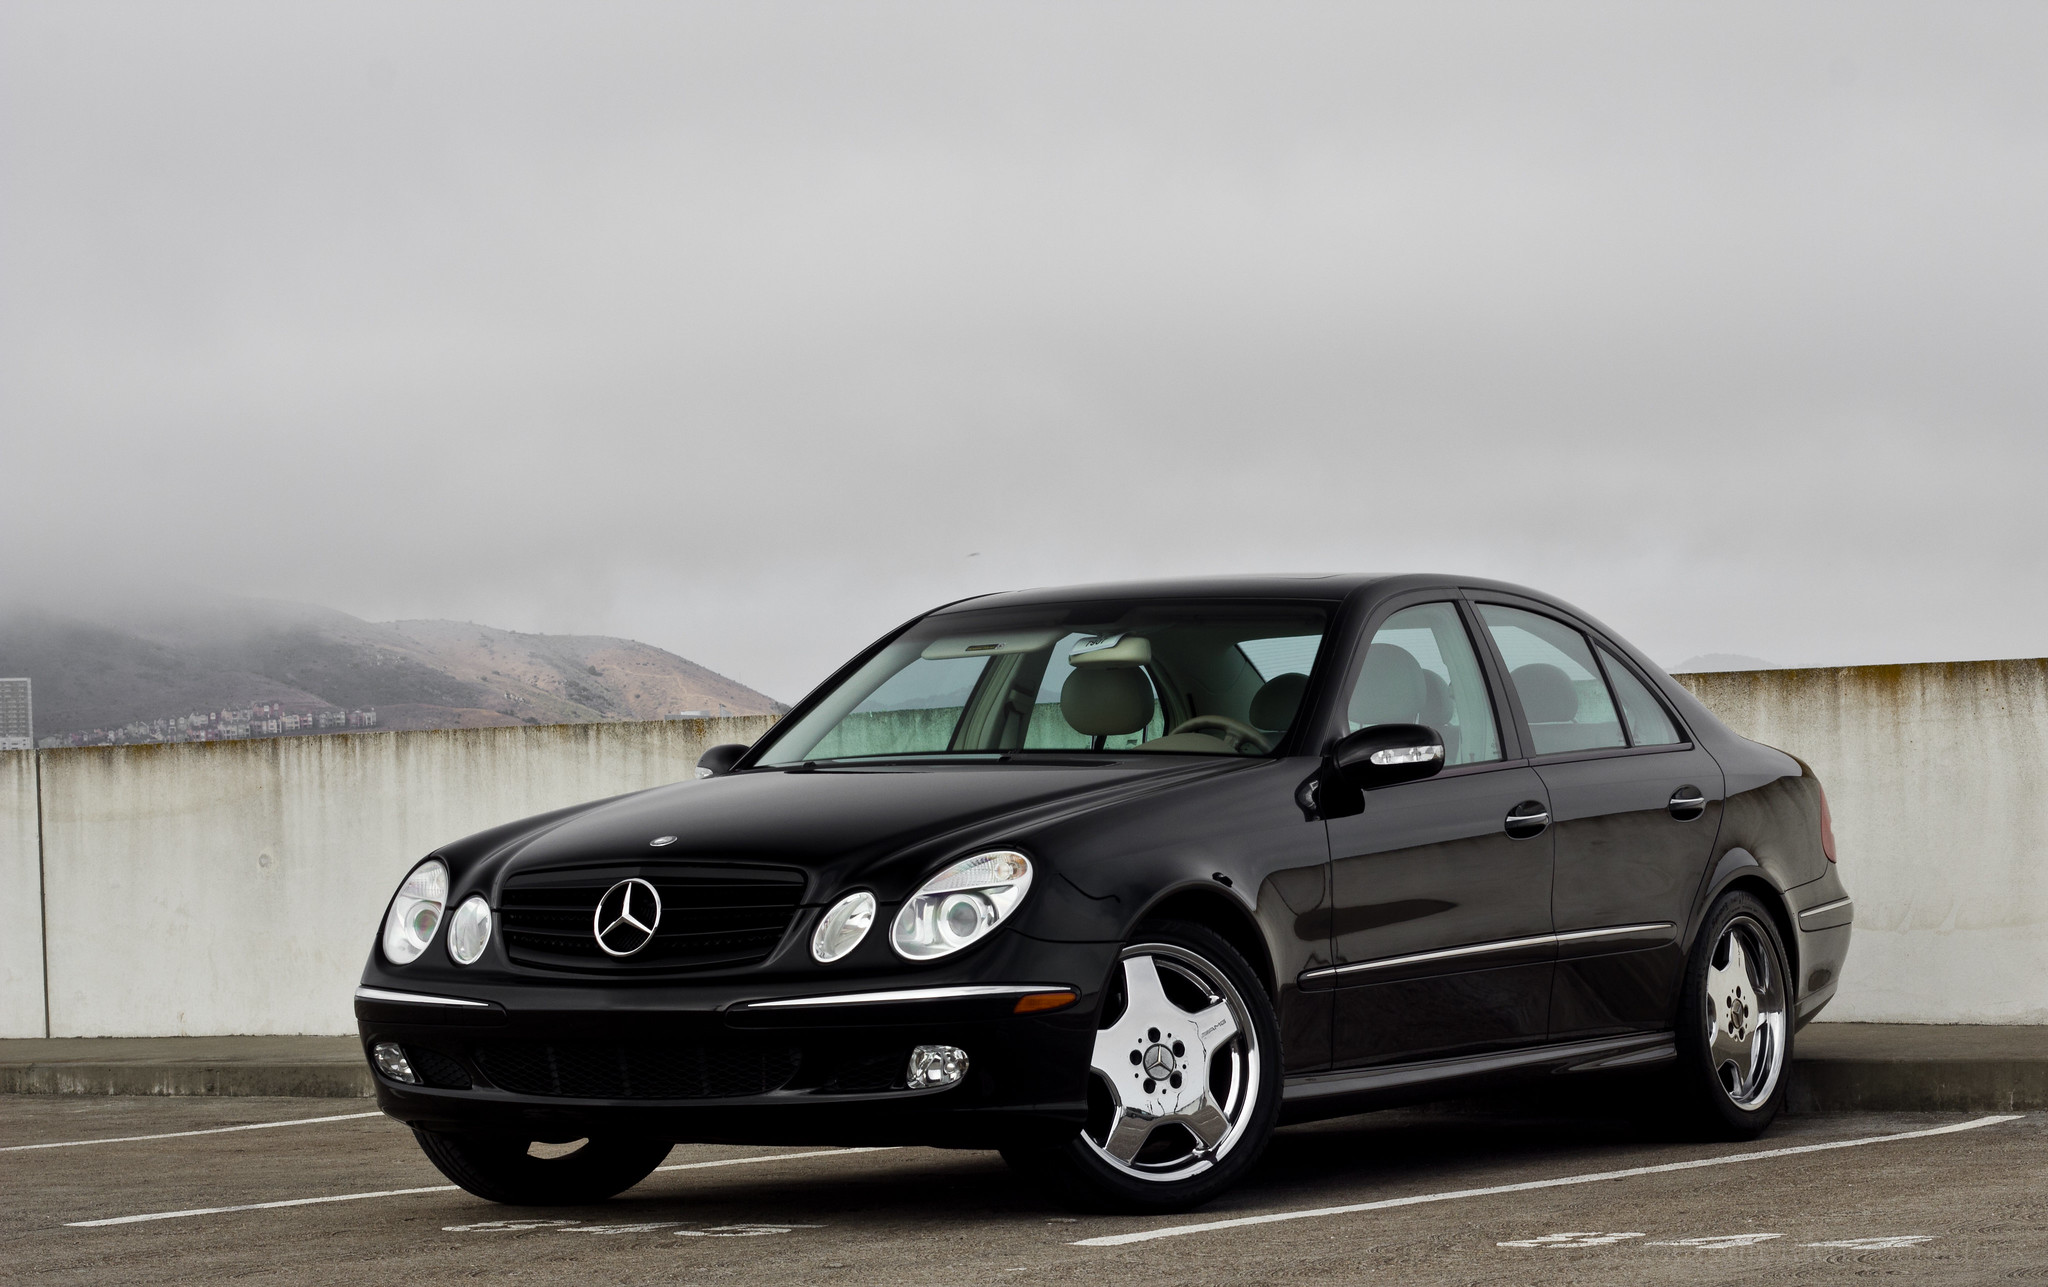 What's the worst car you've ever bought? : cars